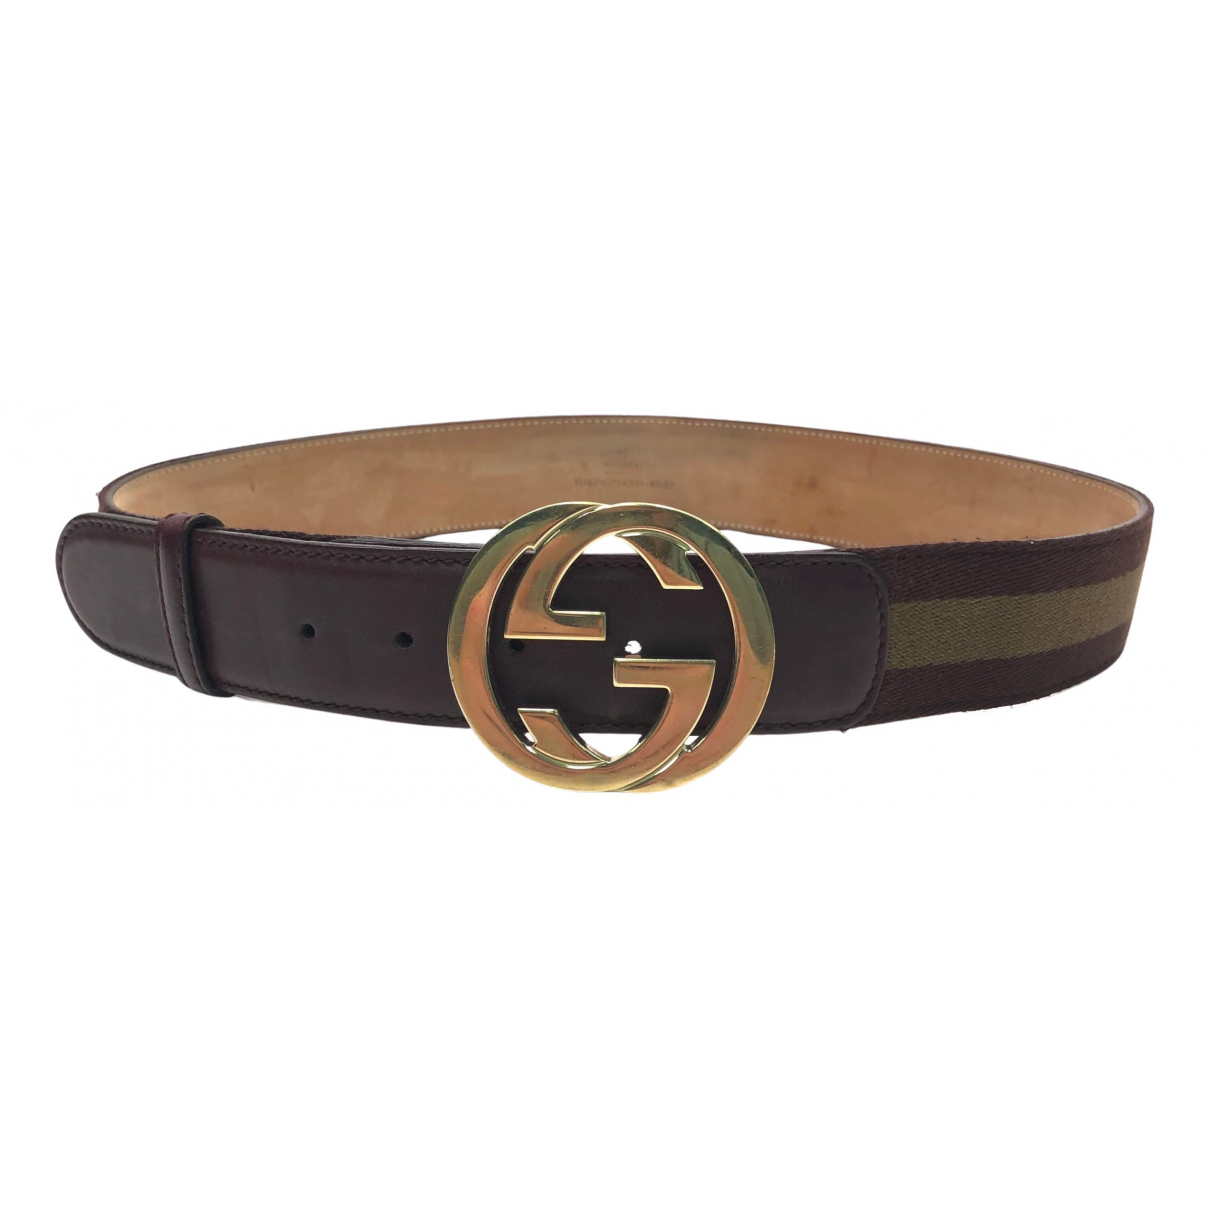 Cinturon Interlocking Buckle de Lona Gucci